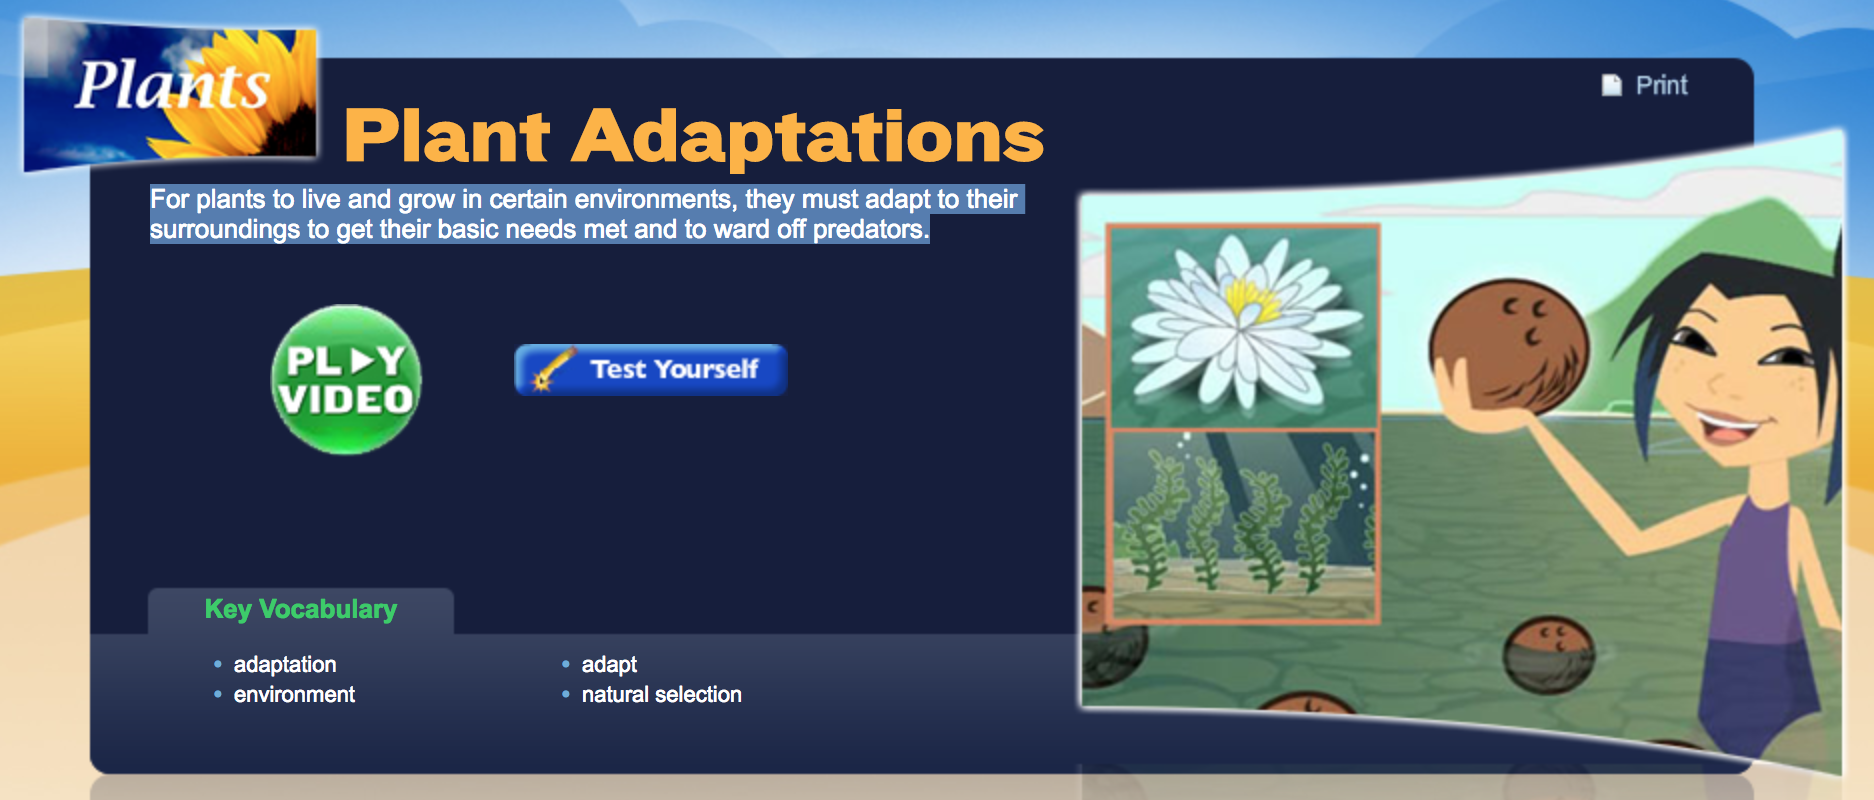 A Free Video And Quiz On Plant Adaptation Appropriate For